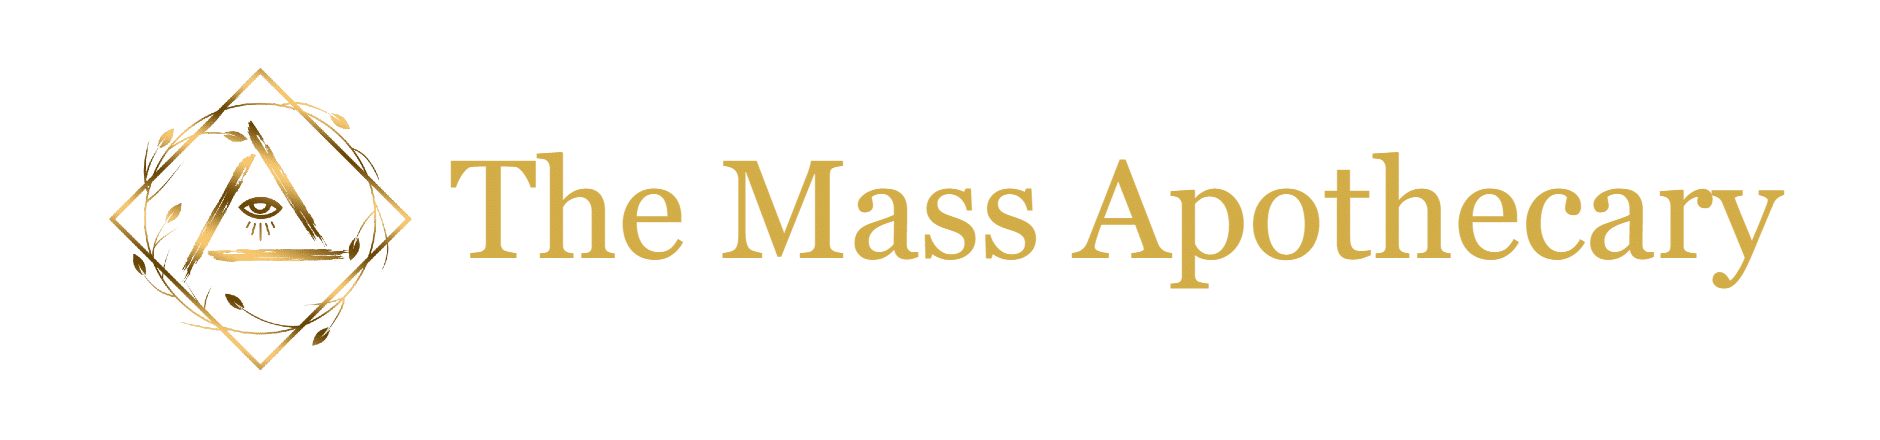 The Mass Apothecary